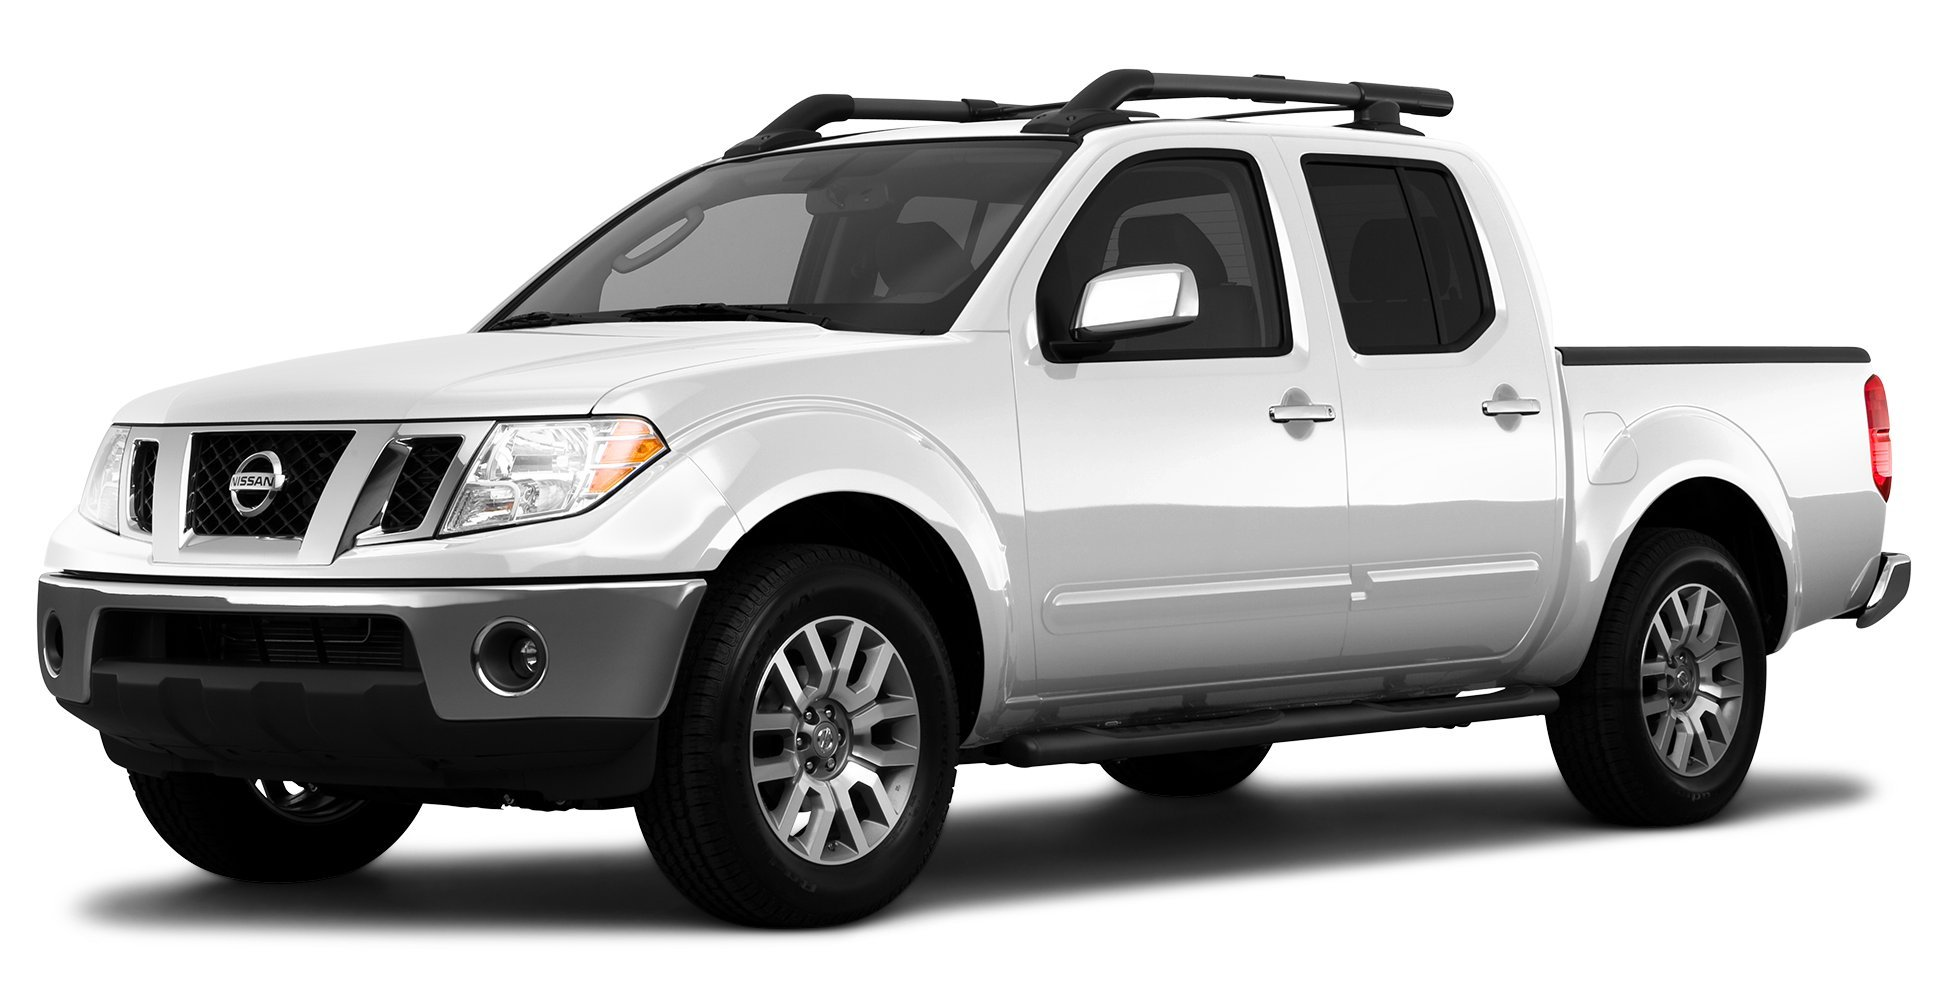 2010 nissan frontier reviews images and. Black Bedroom Furniture Sets. Home Design Ideas